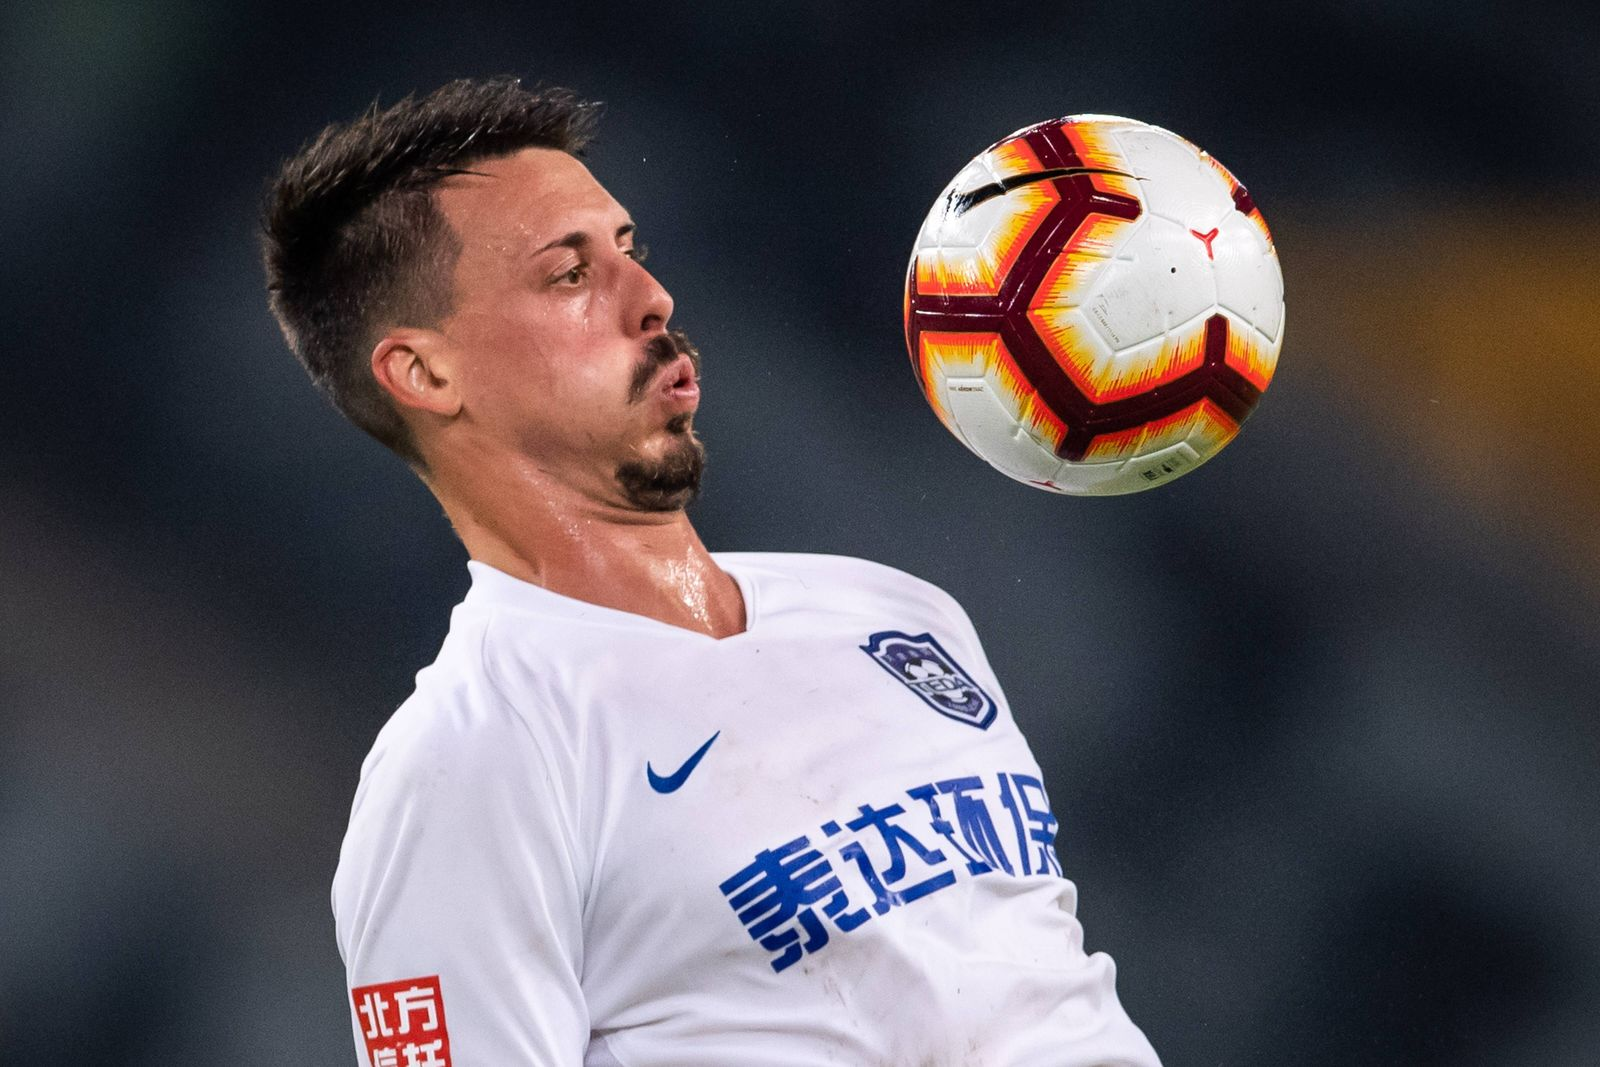 Sport Bilder des Tages German football player Sandro Wagner of Tianjin TEDA dribbles against Shenzhen F.C. in their 13t